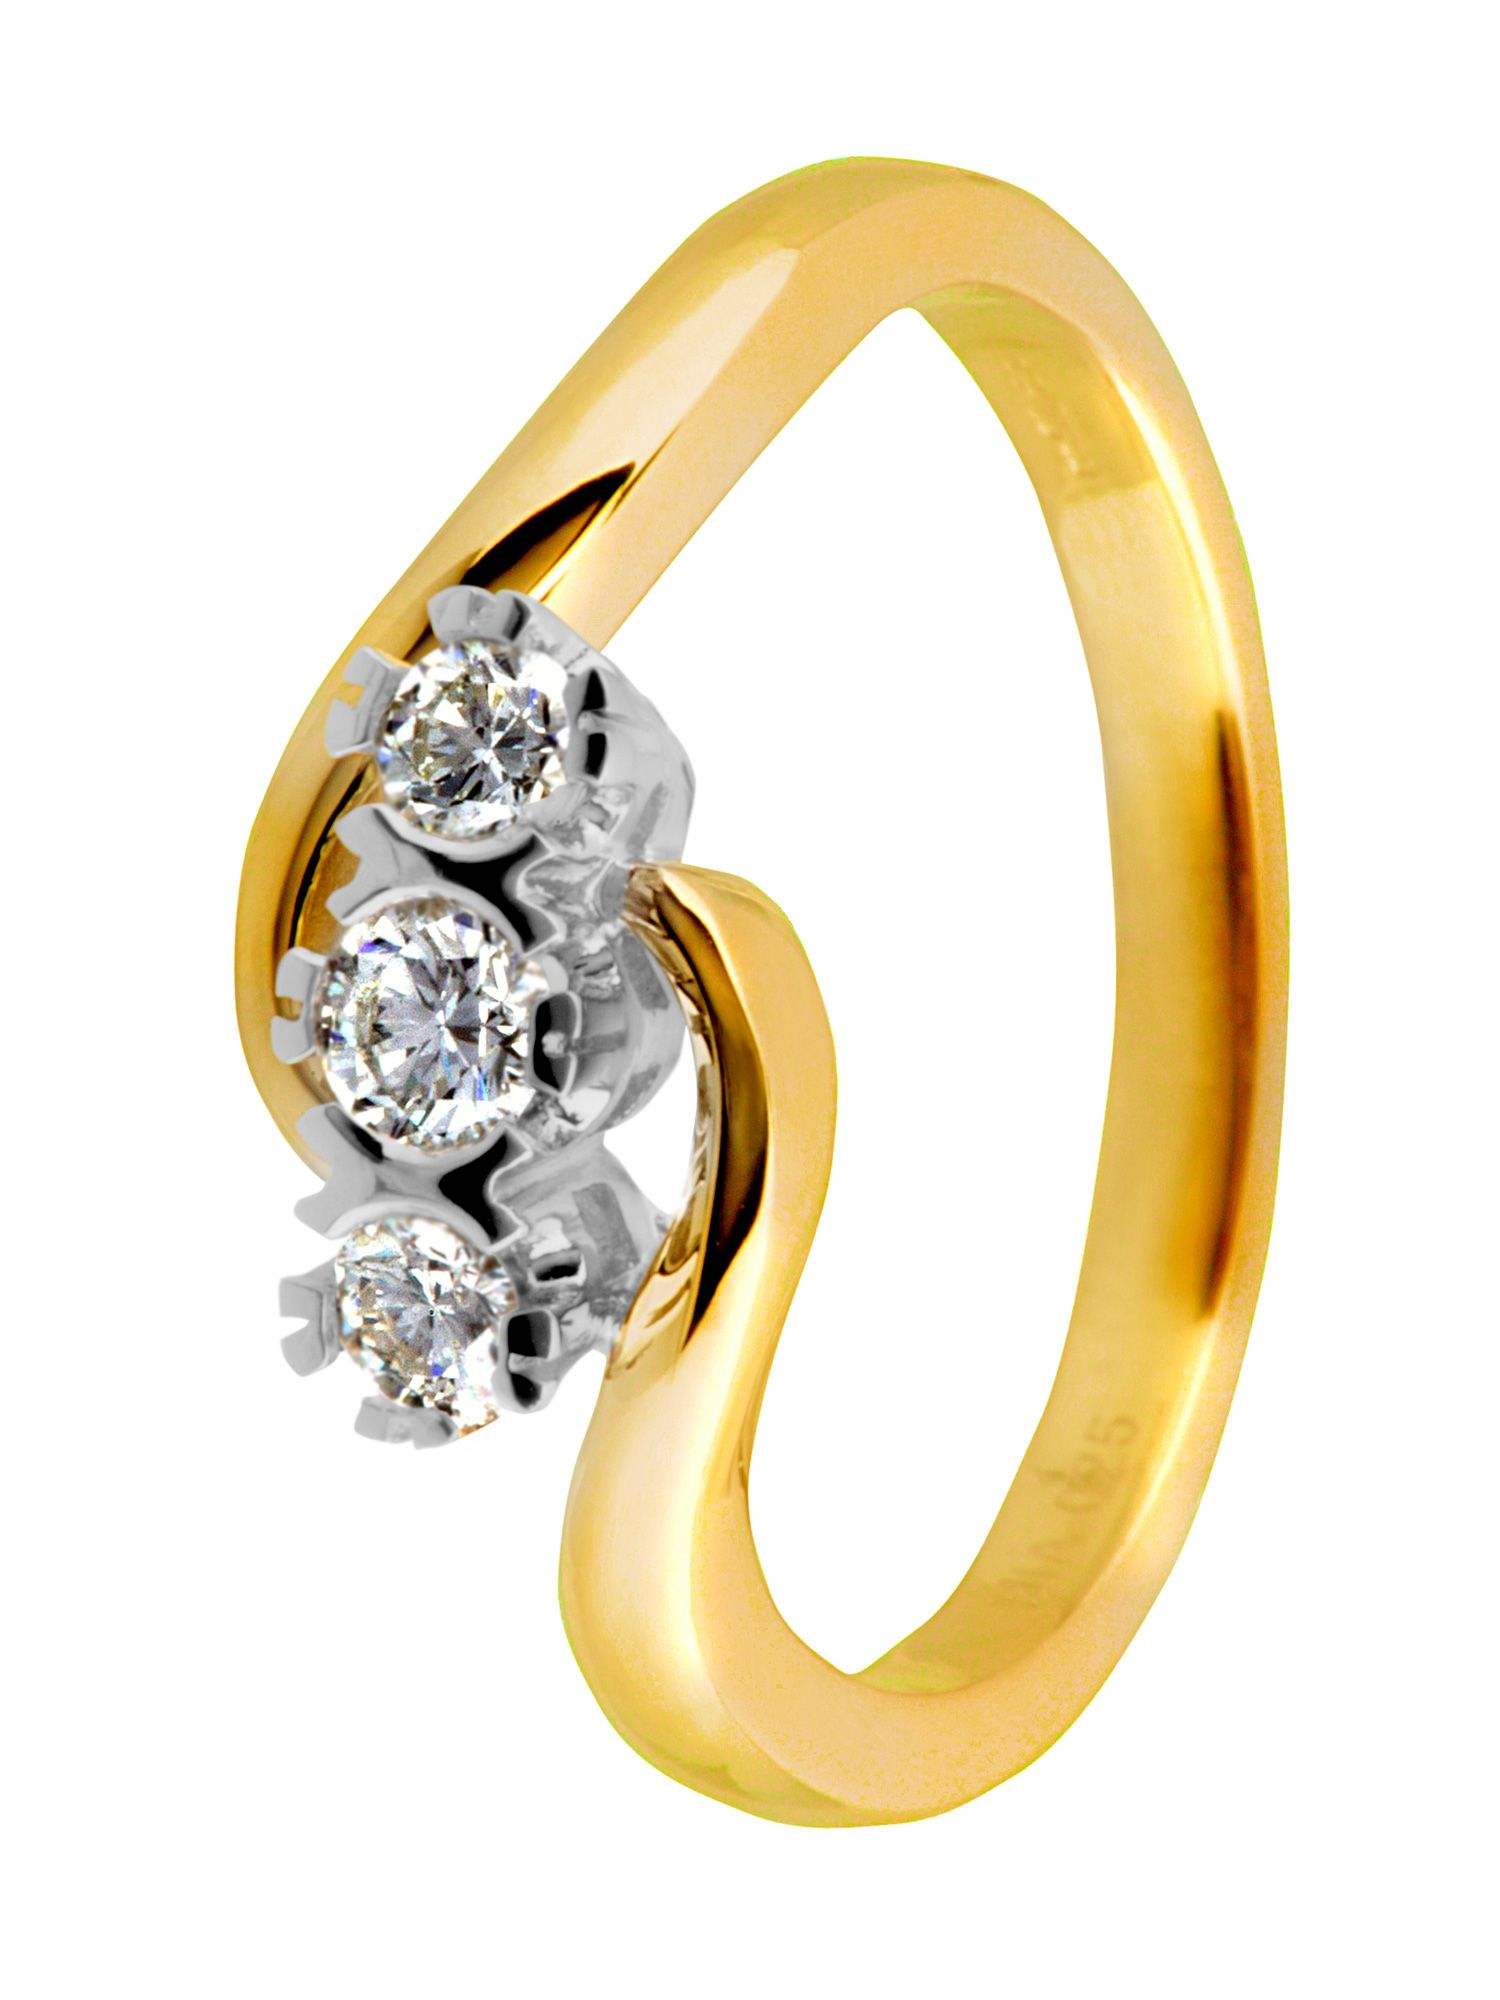 18ct yellow gold 3 stone 0.25ct diamond ring - Gold